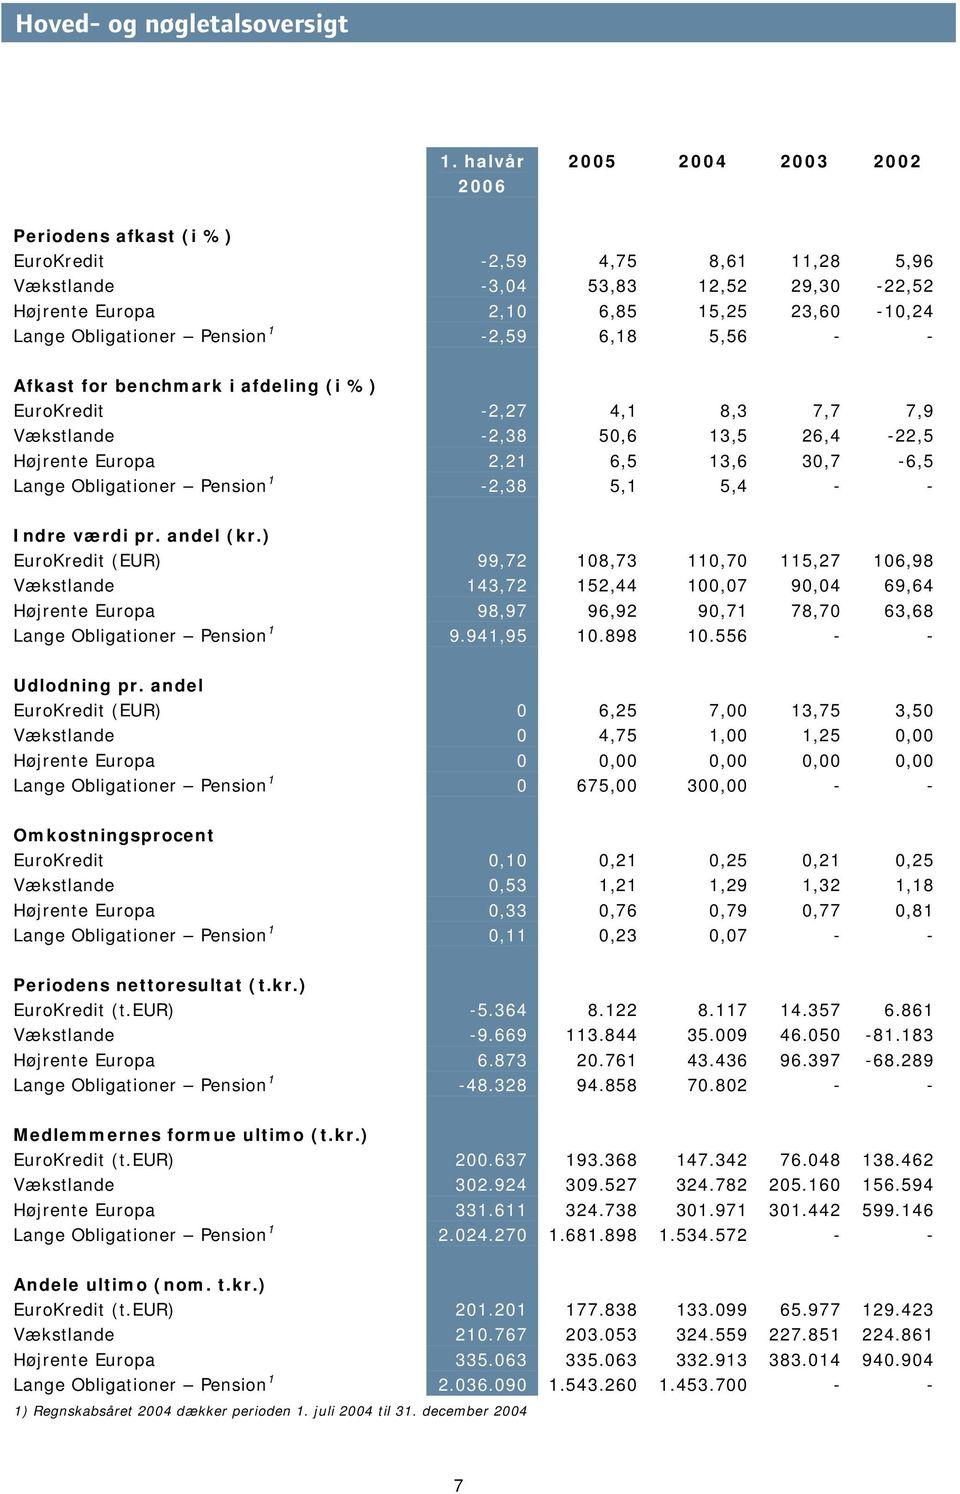 Pension 1-2,59 6,18 5,56 - - Afkast for benchmark i afdeling (i %) EuroKredit -2,27 4,1 8,3 7,7 7,9 Vækstlande -2,38 50,6 13,5 26,4-22,5 Højrente Europa 2,21 6,5 13,6 30,7-6,5 Lange Obligationer